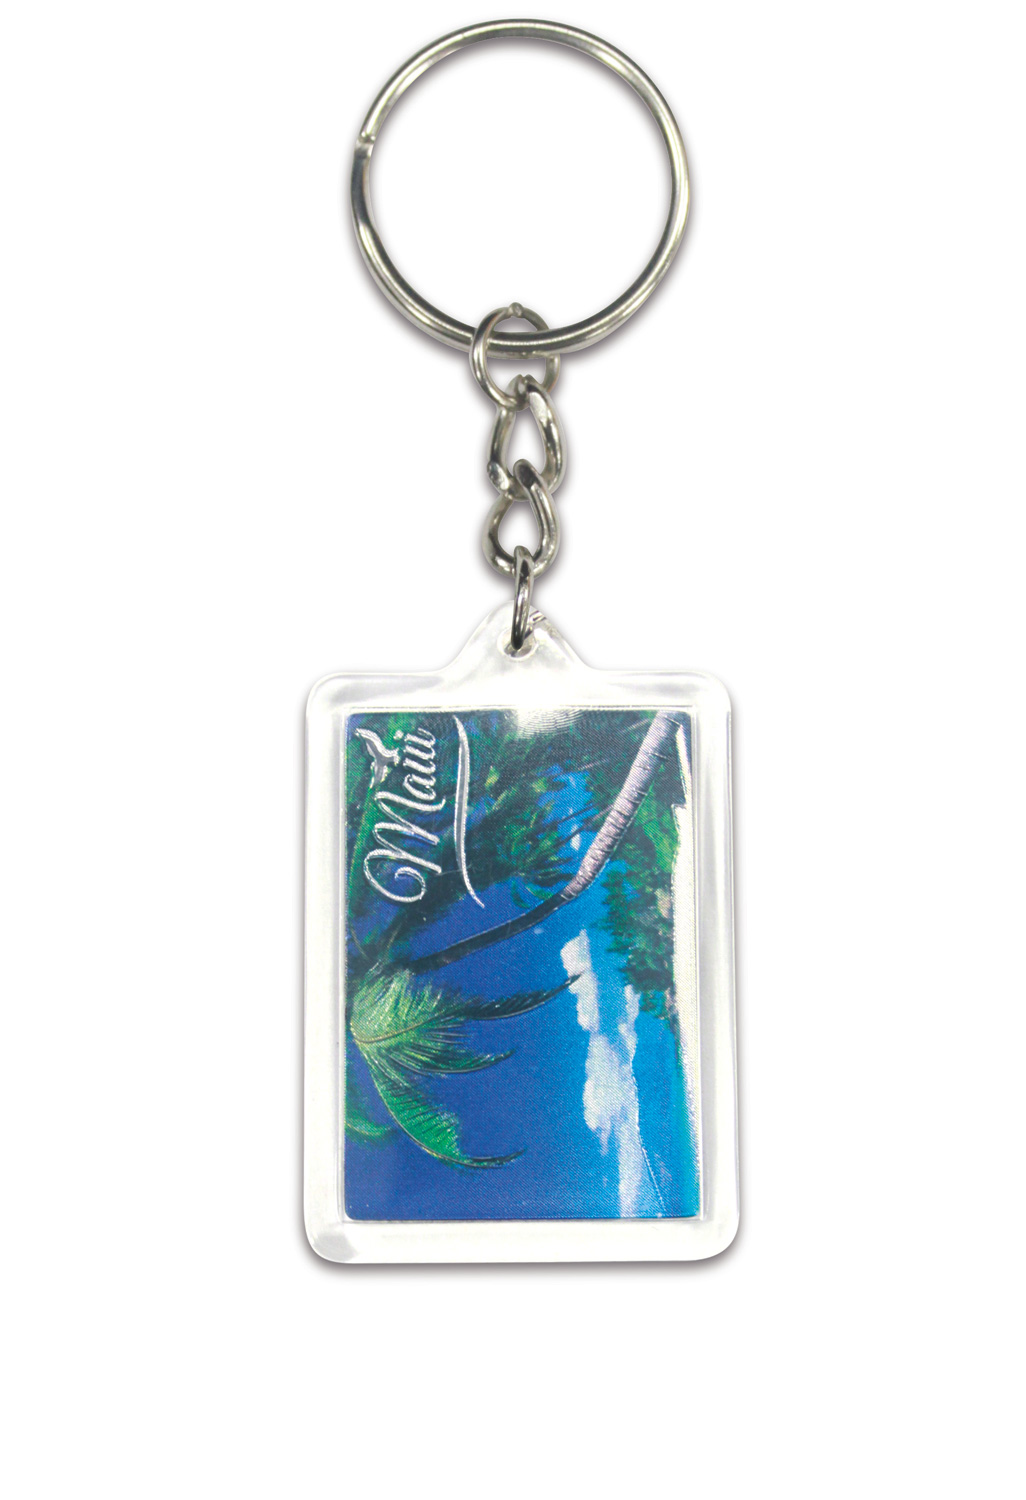 Die Cut Foil Keychain - Seaside Palm